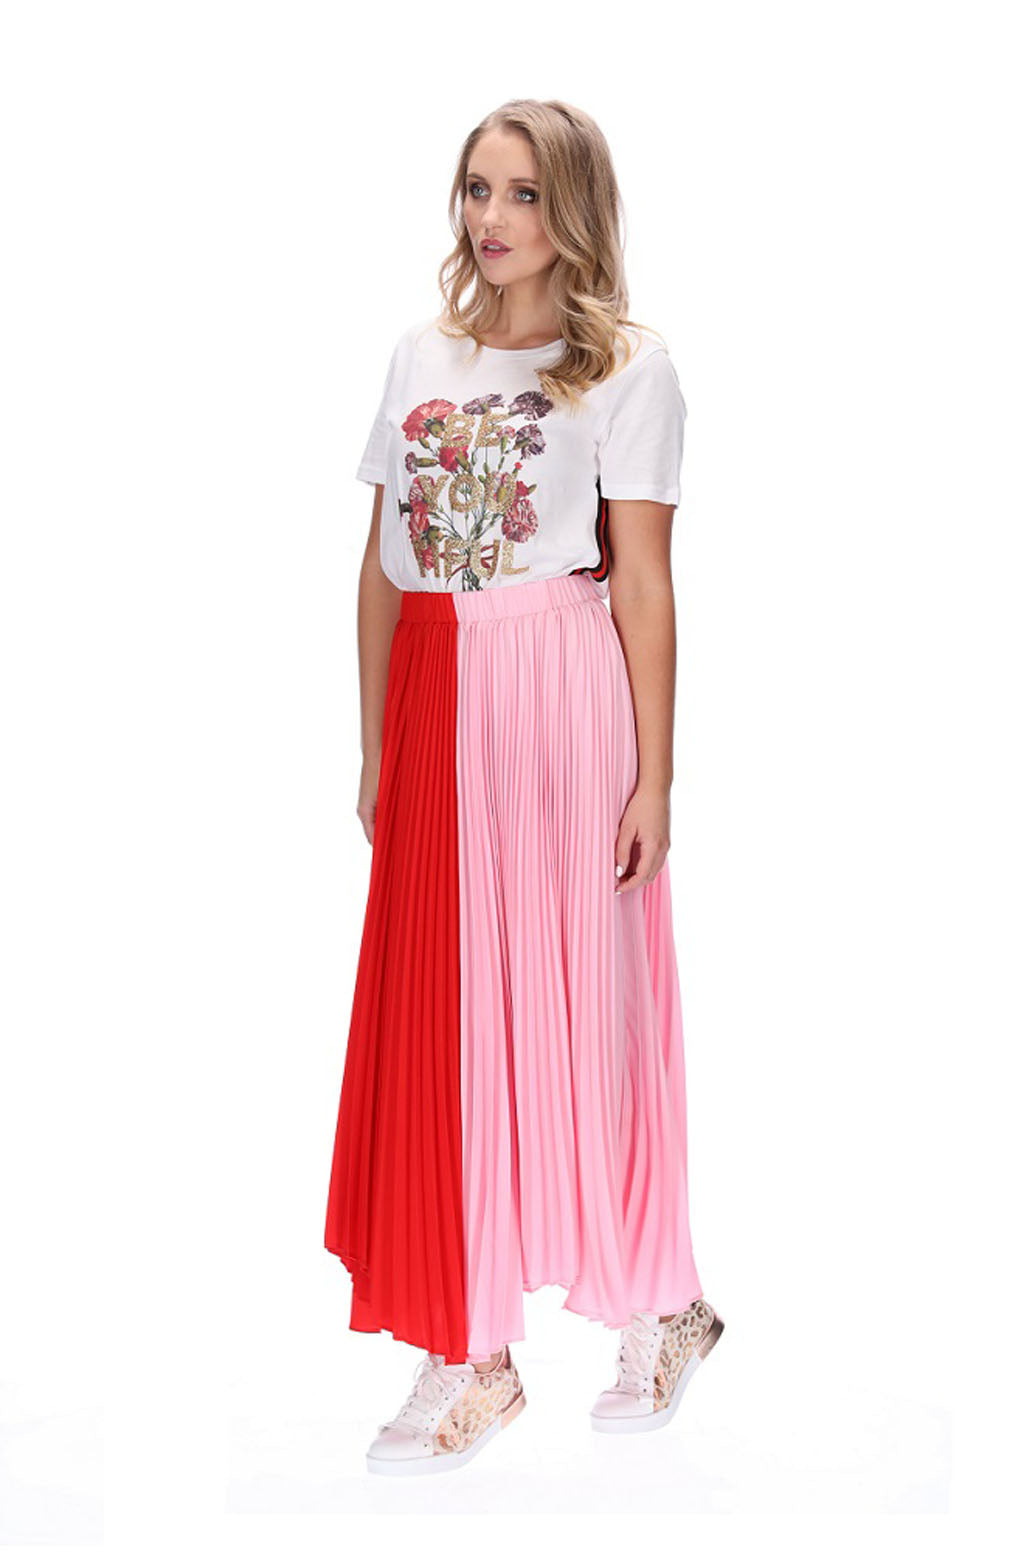 Augustine Alexa Pleated Skirt